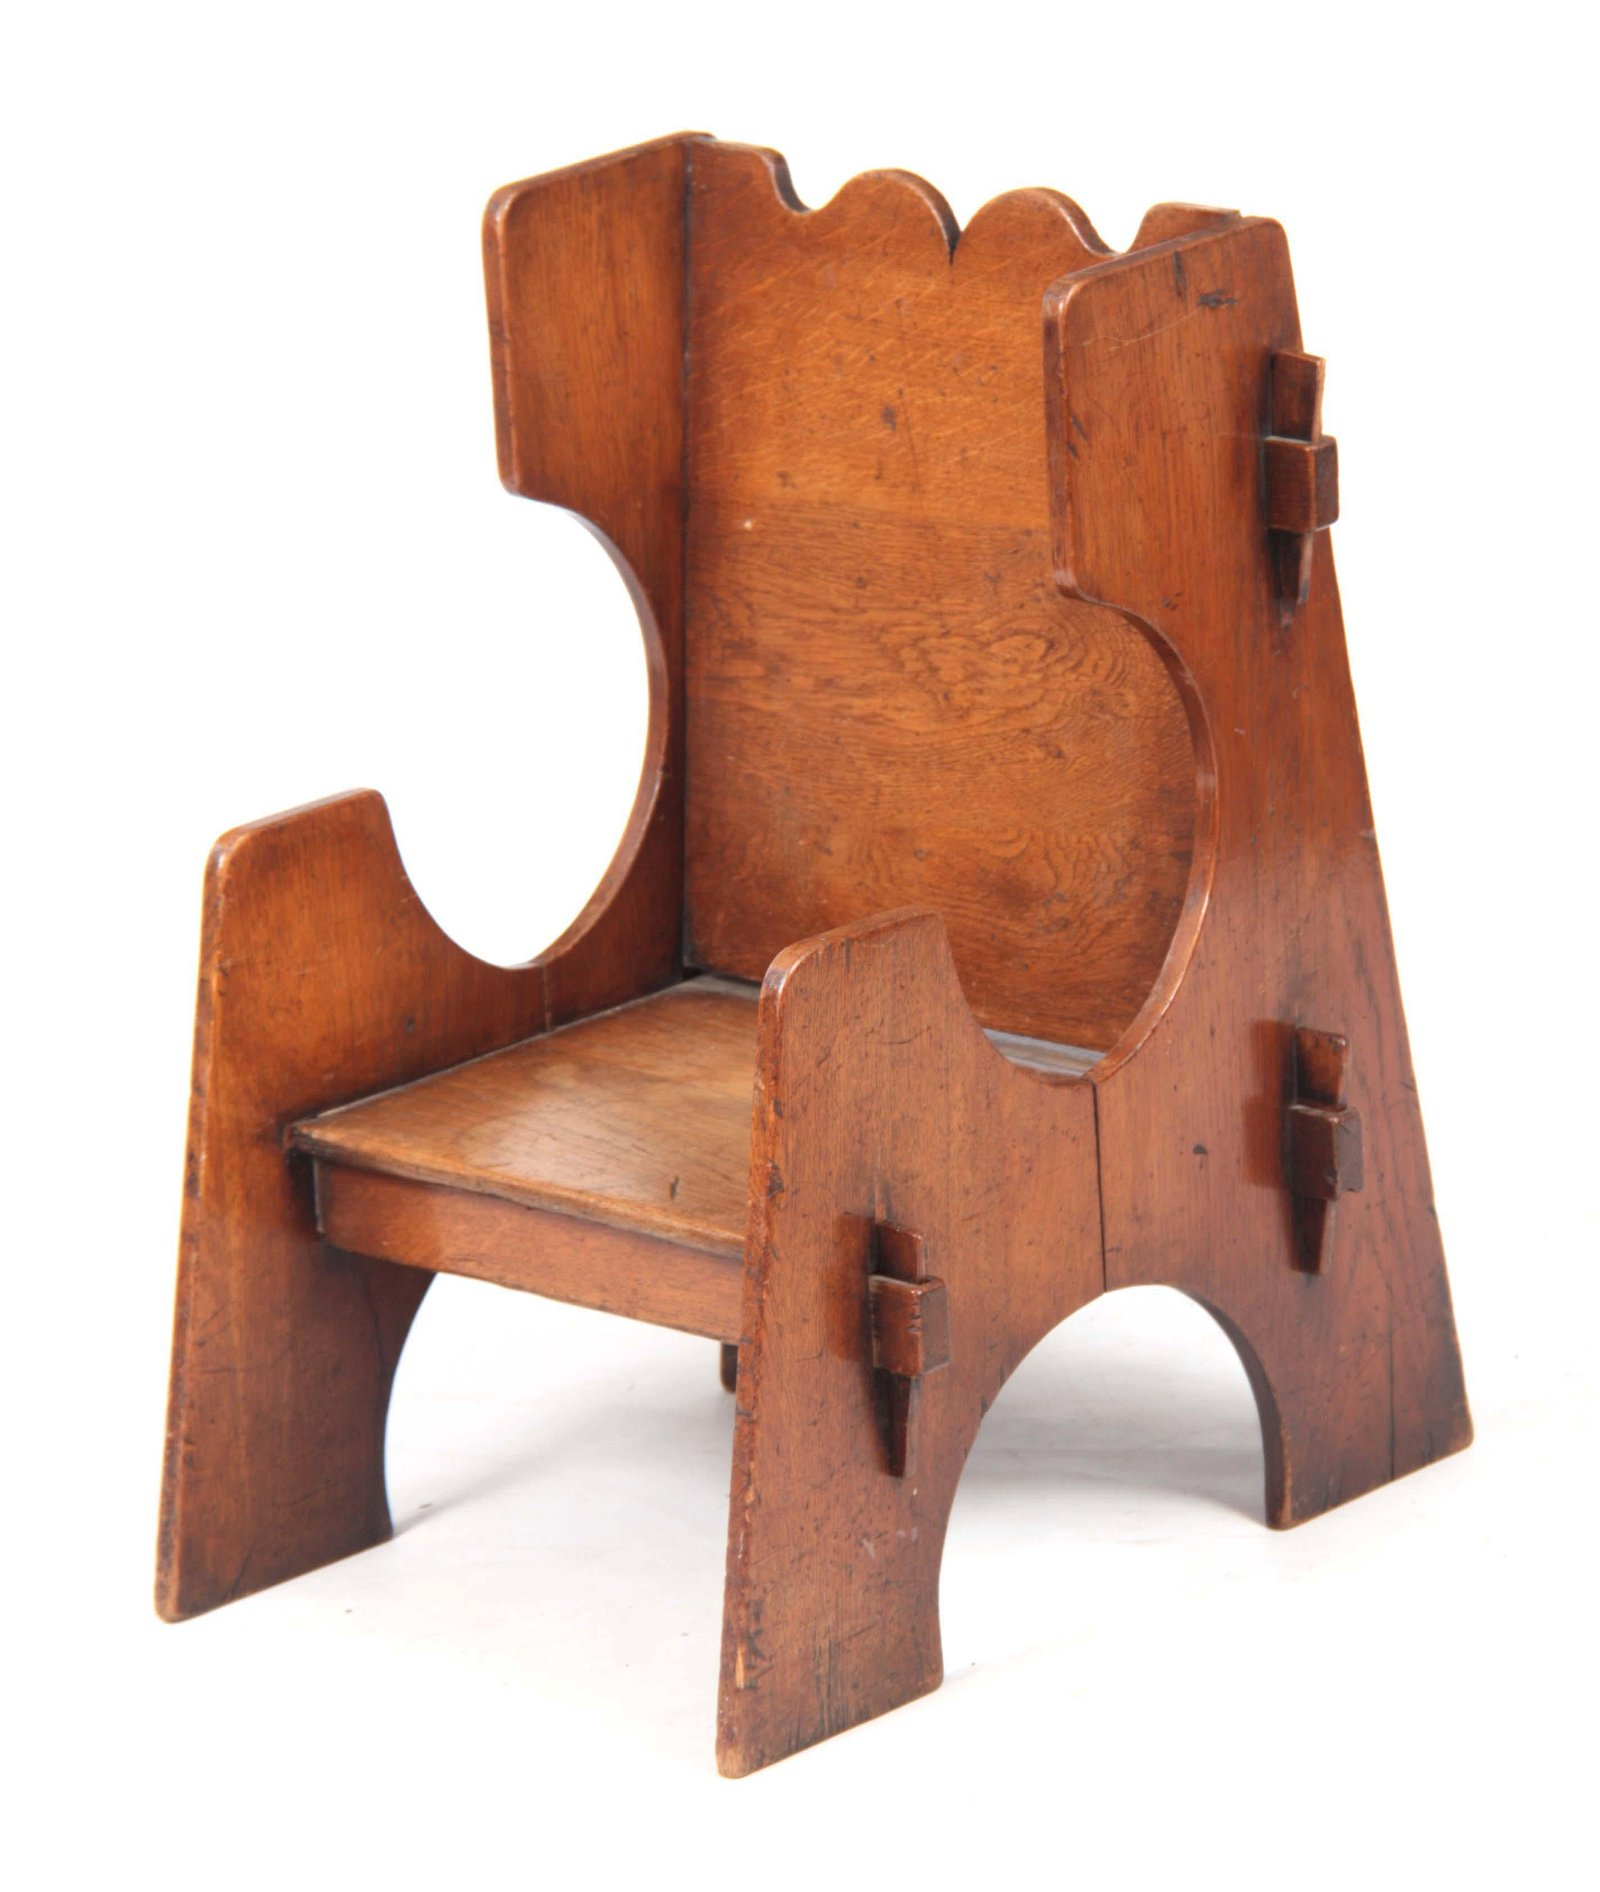 A STYLISH ARTS AND CRAFTS OAK CHILDS CHAIR with pe